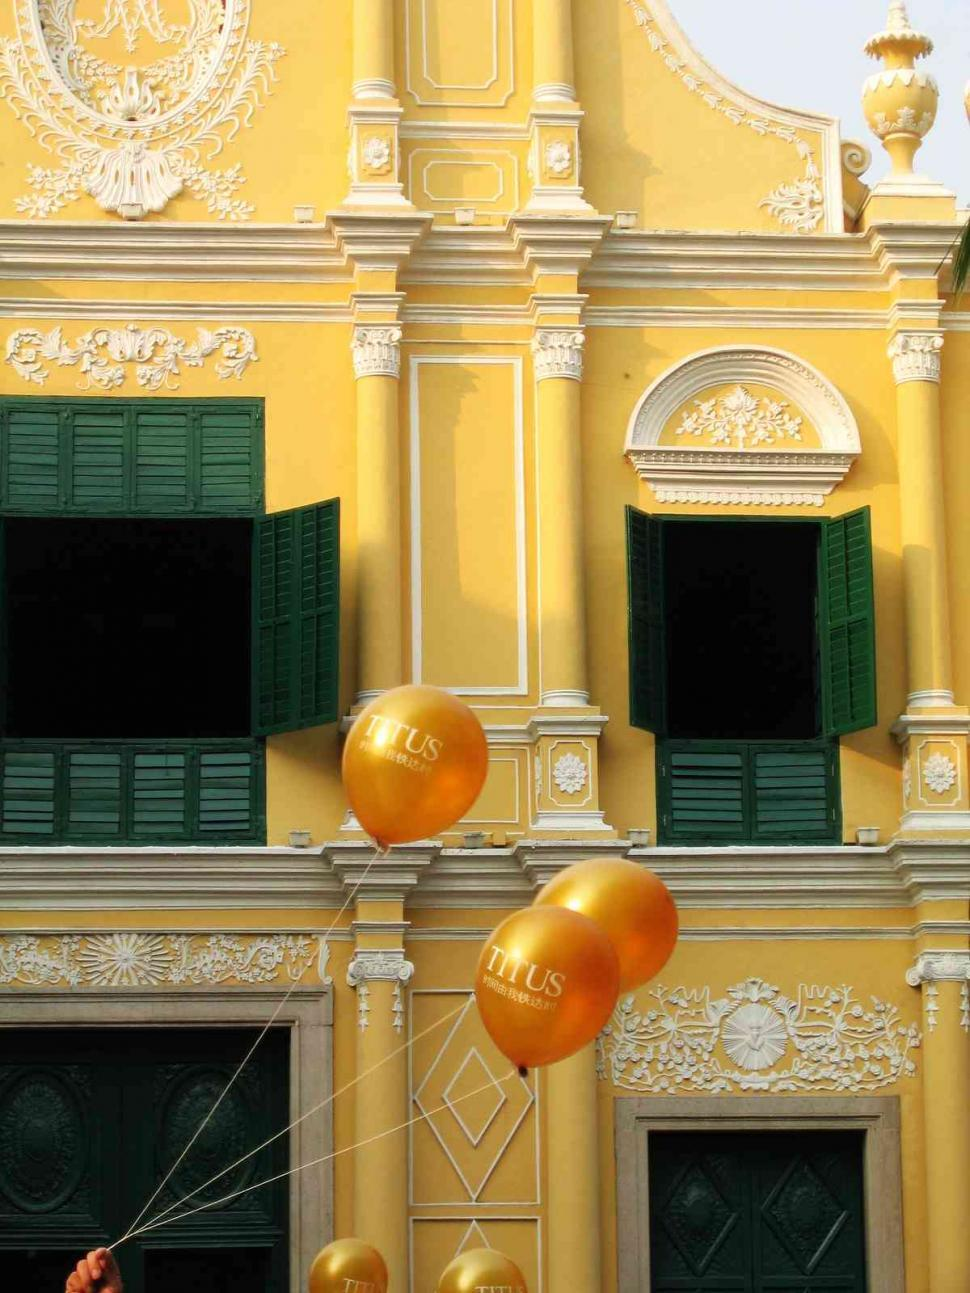 Download Free Stock Photo of Balloon over church